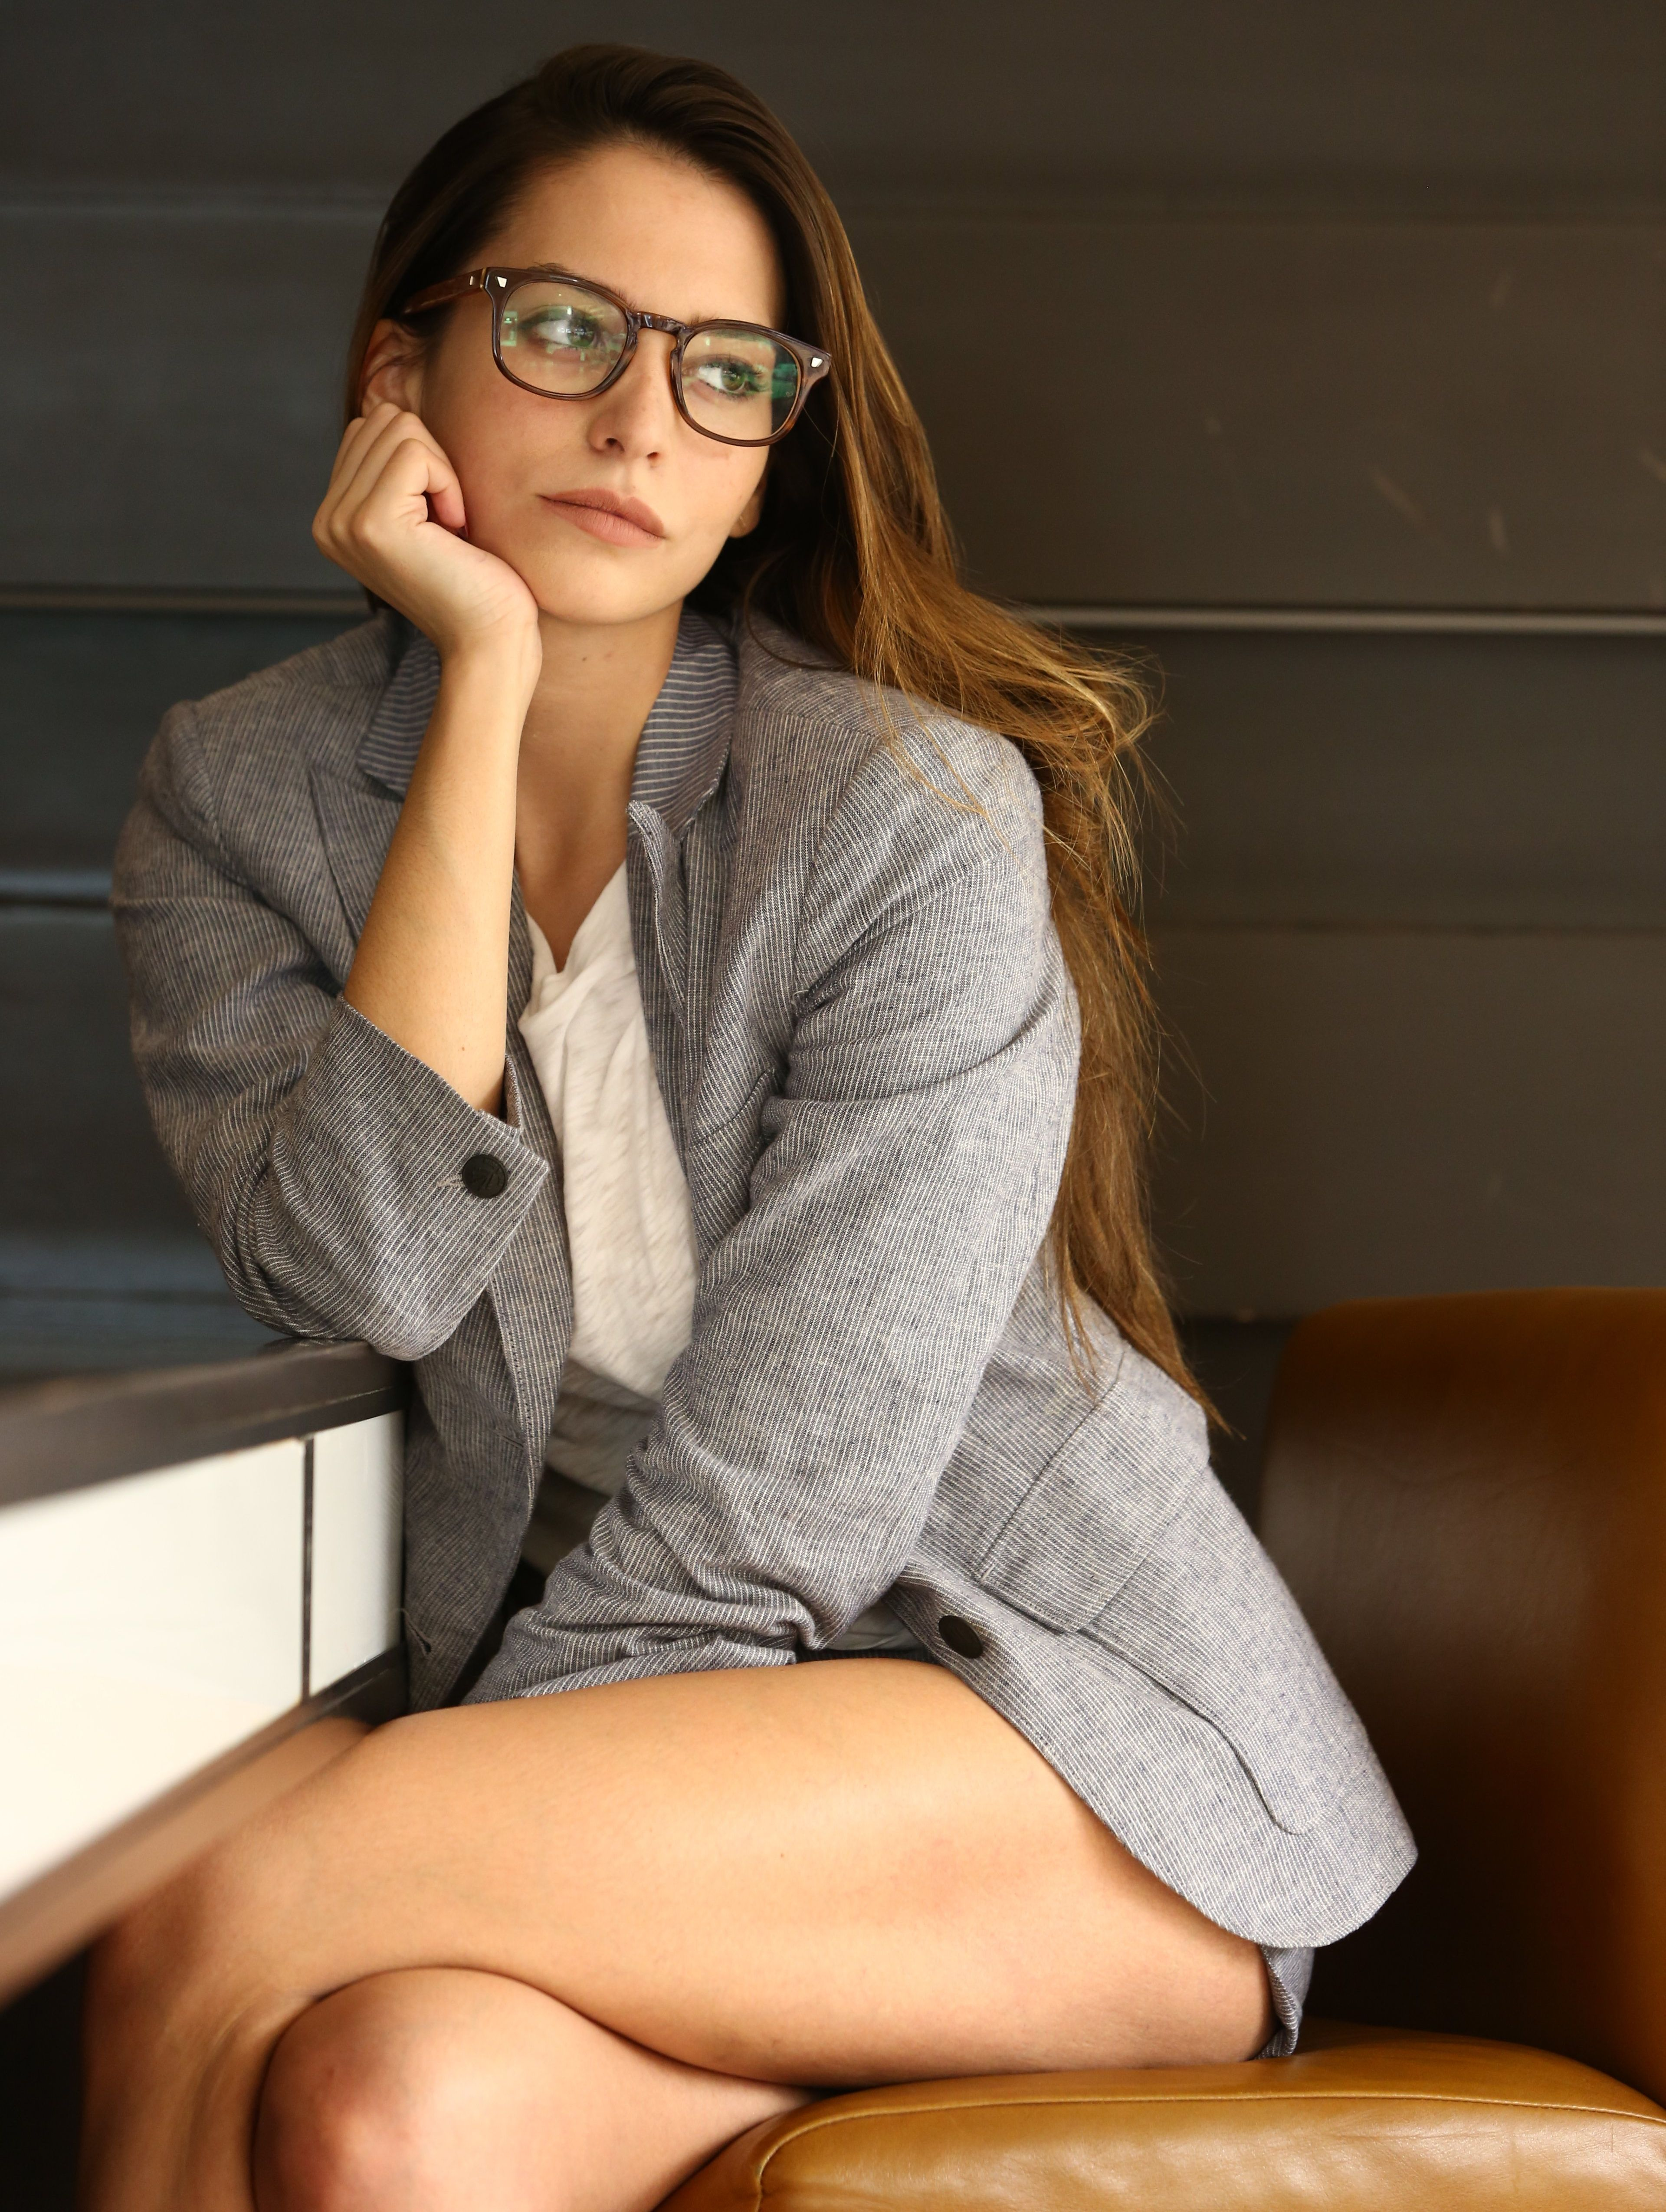 grey-young-nude-women-with-glasses-vouyer